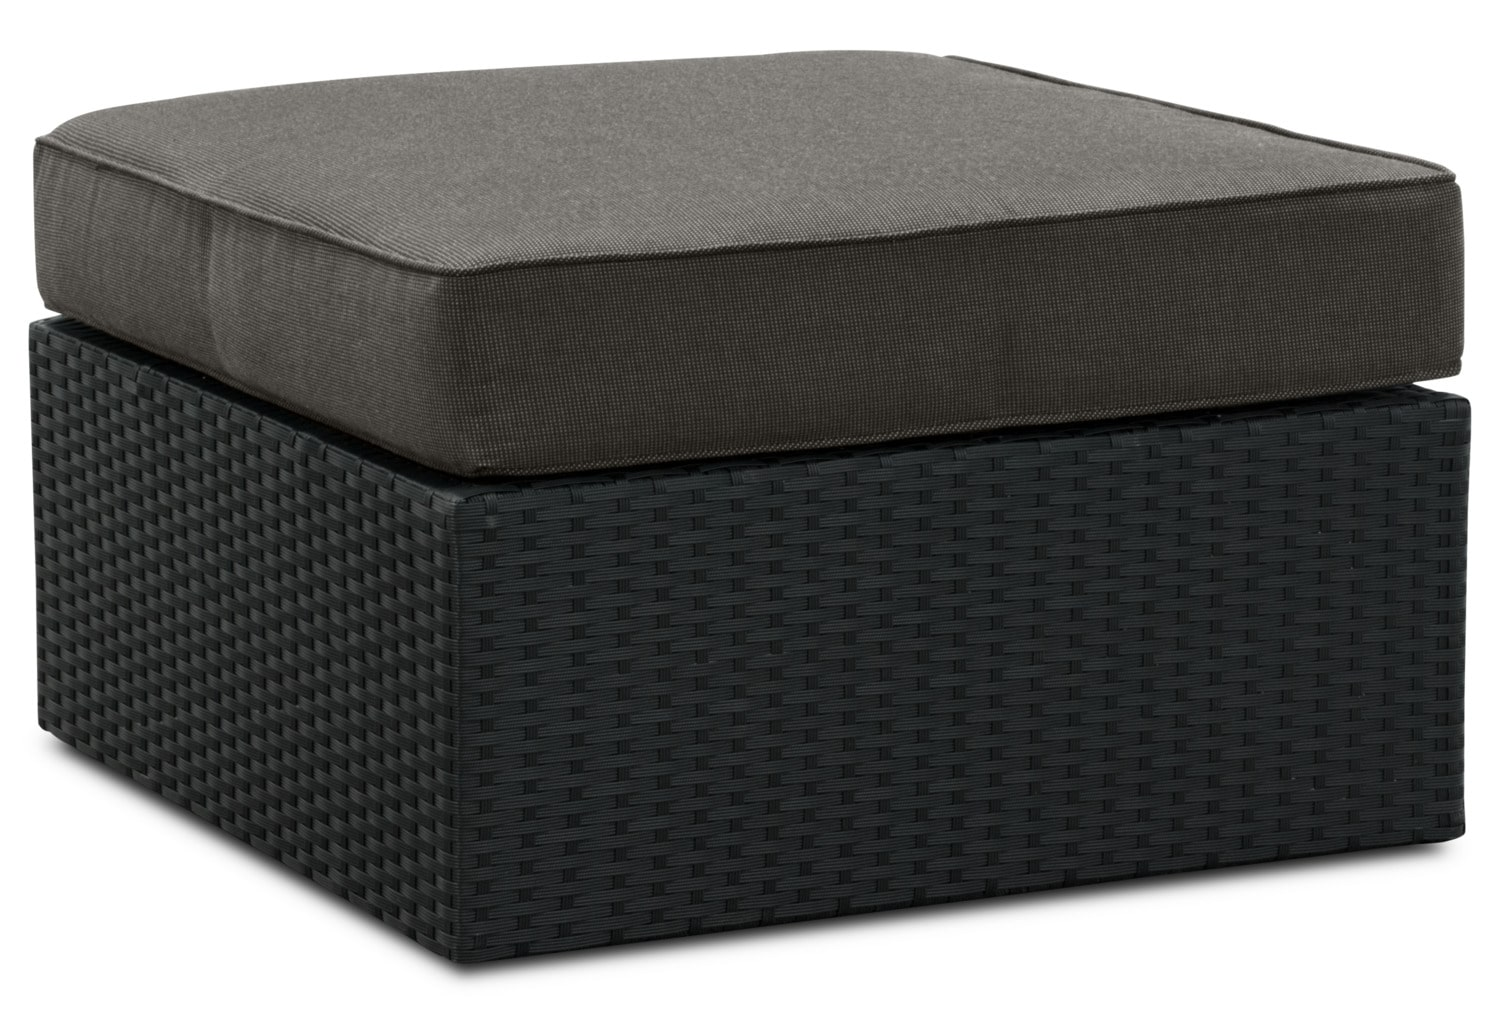 Outdoor Furniture - Minnesota Patio Ottoman